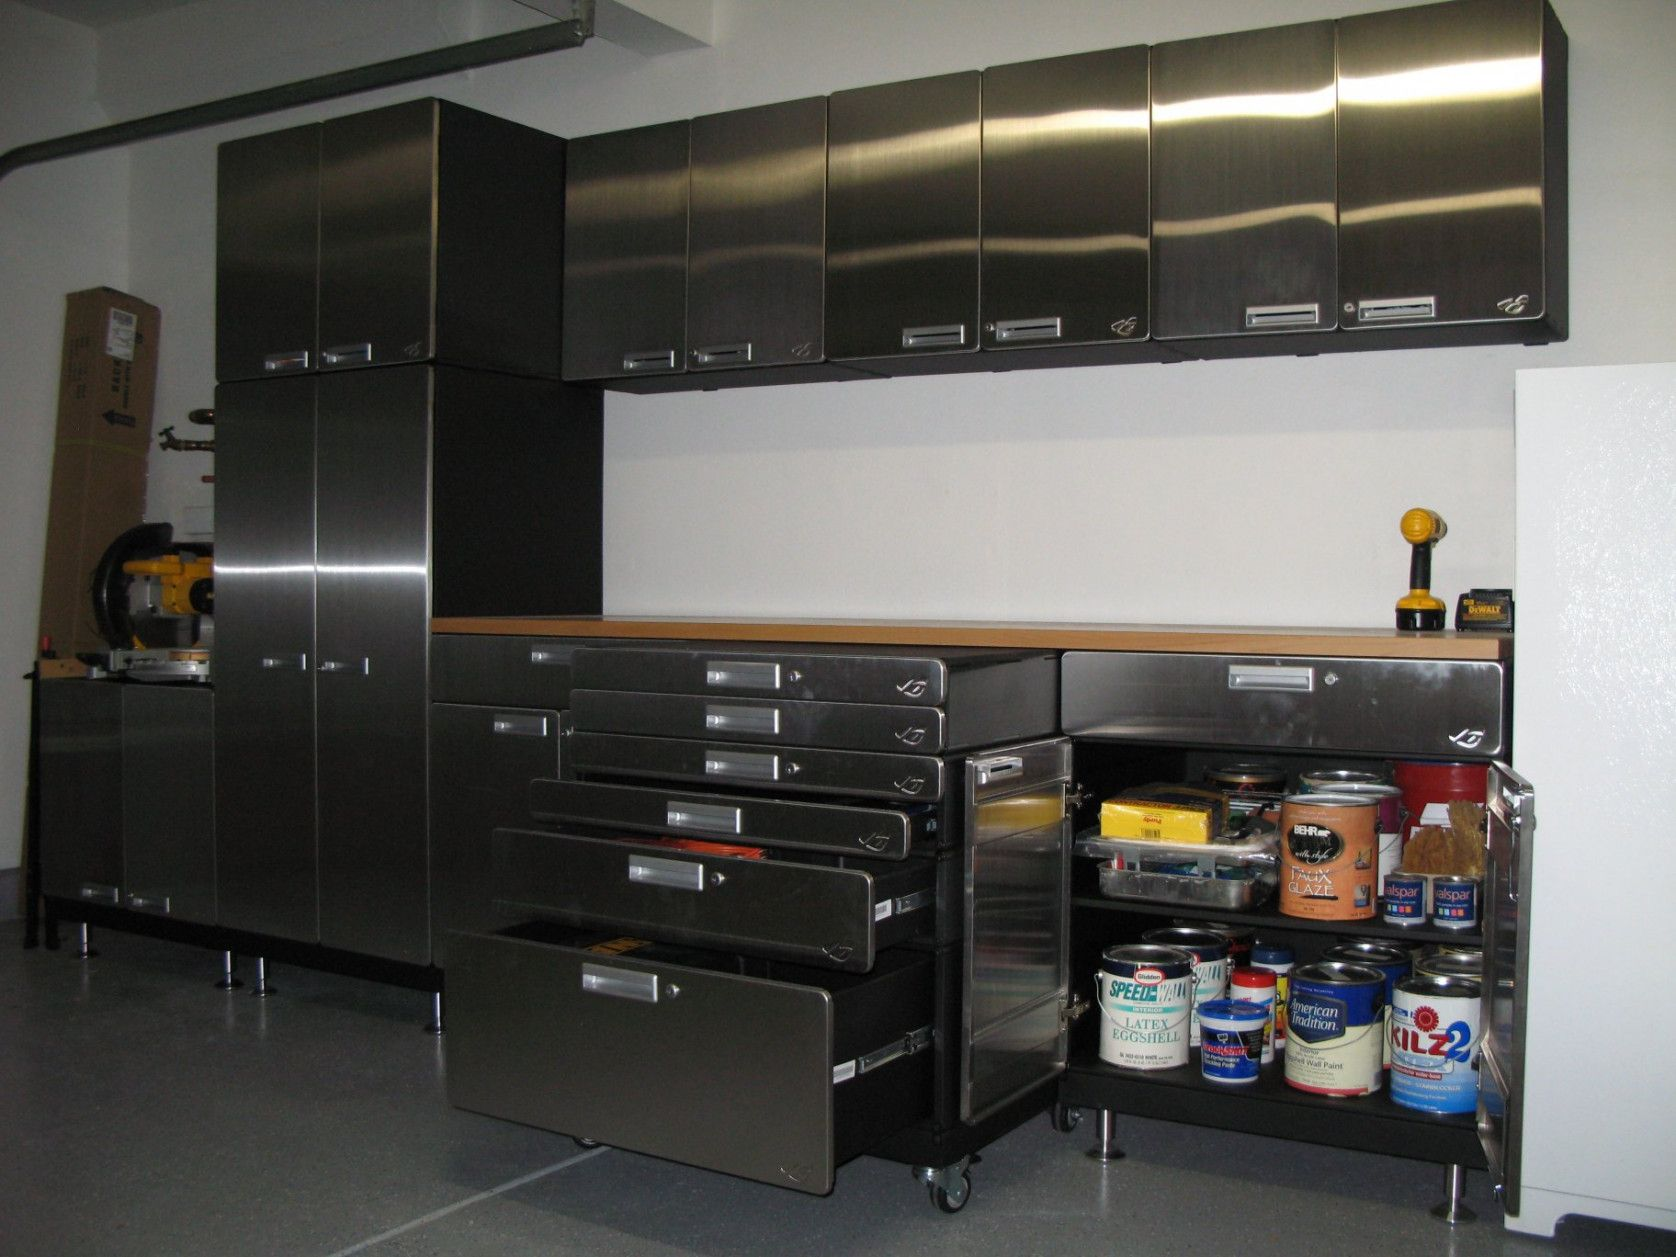 77 Used Garage Storage Cabinets Remodeling Ideas For Kitchens Check More At Http